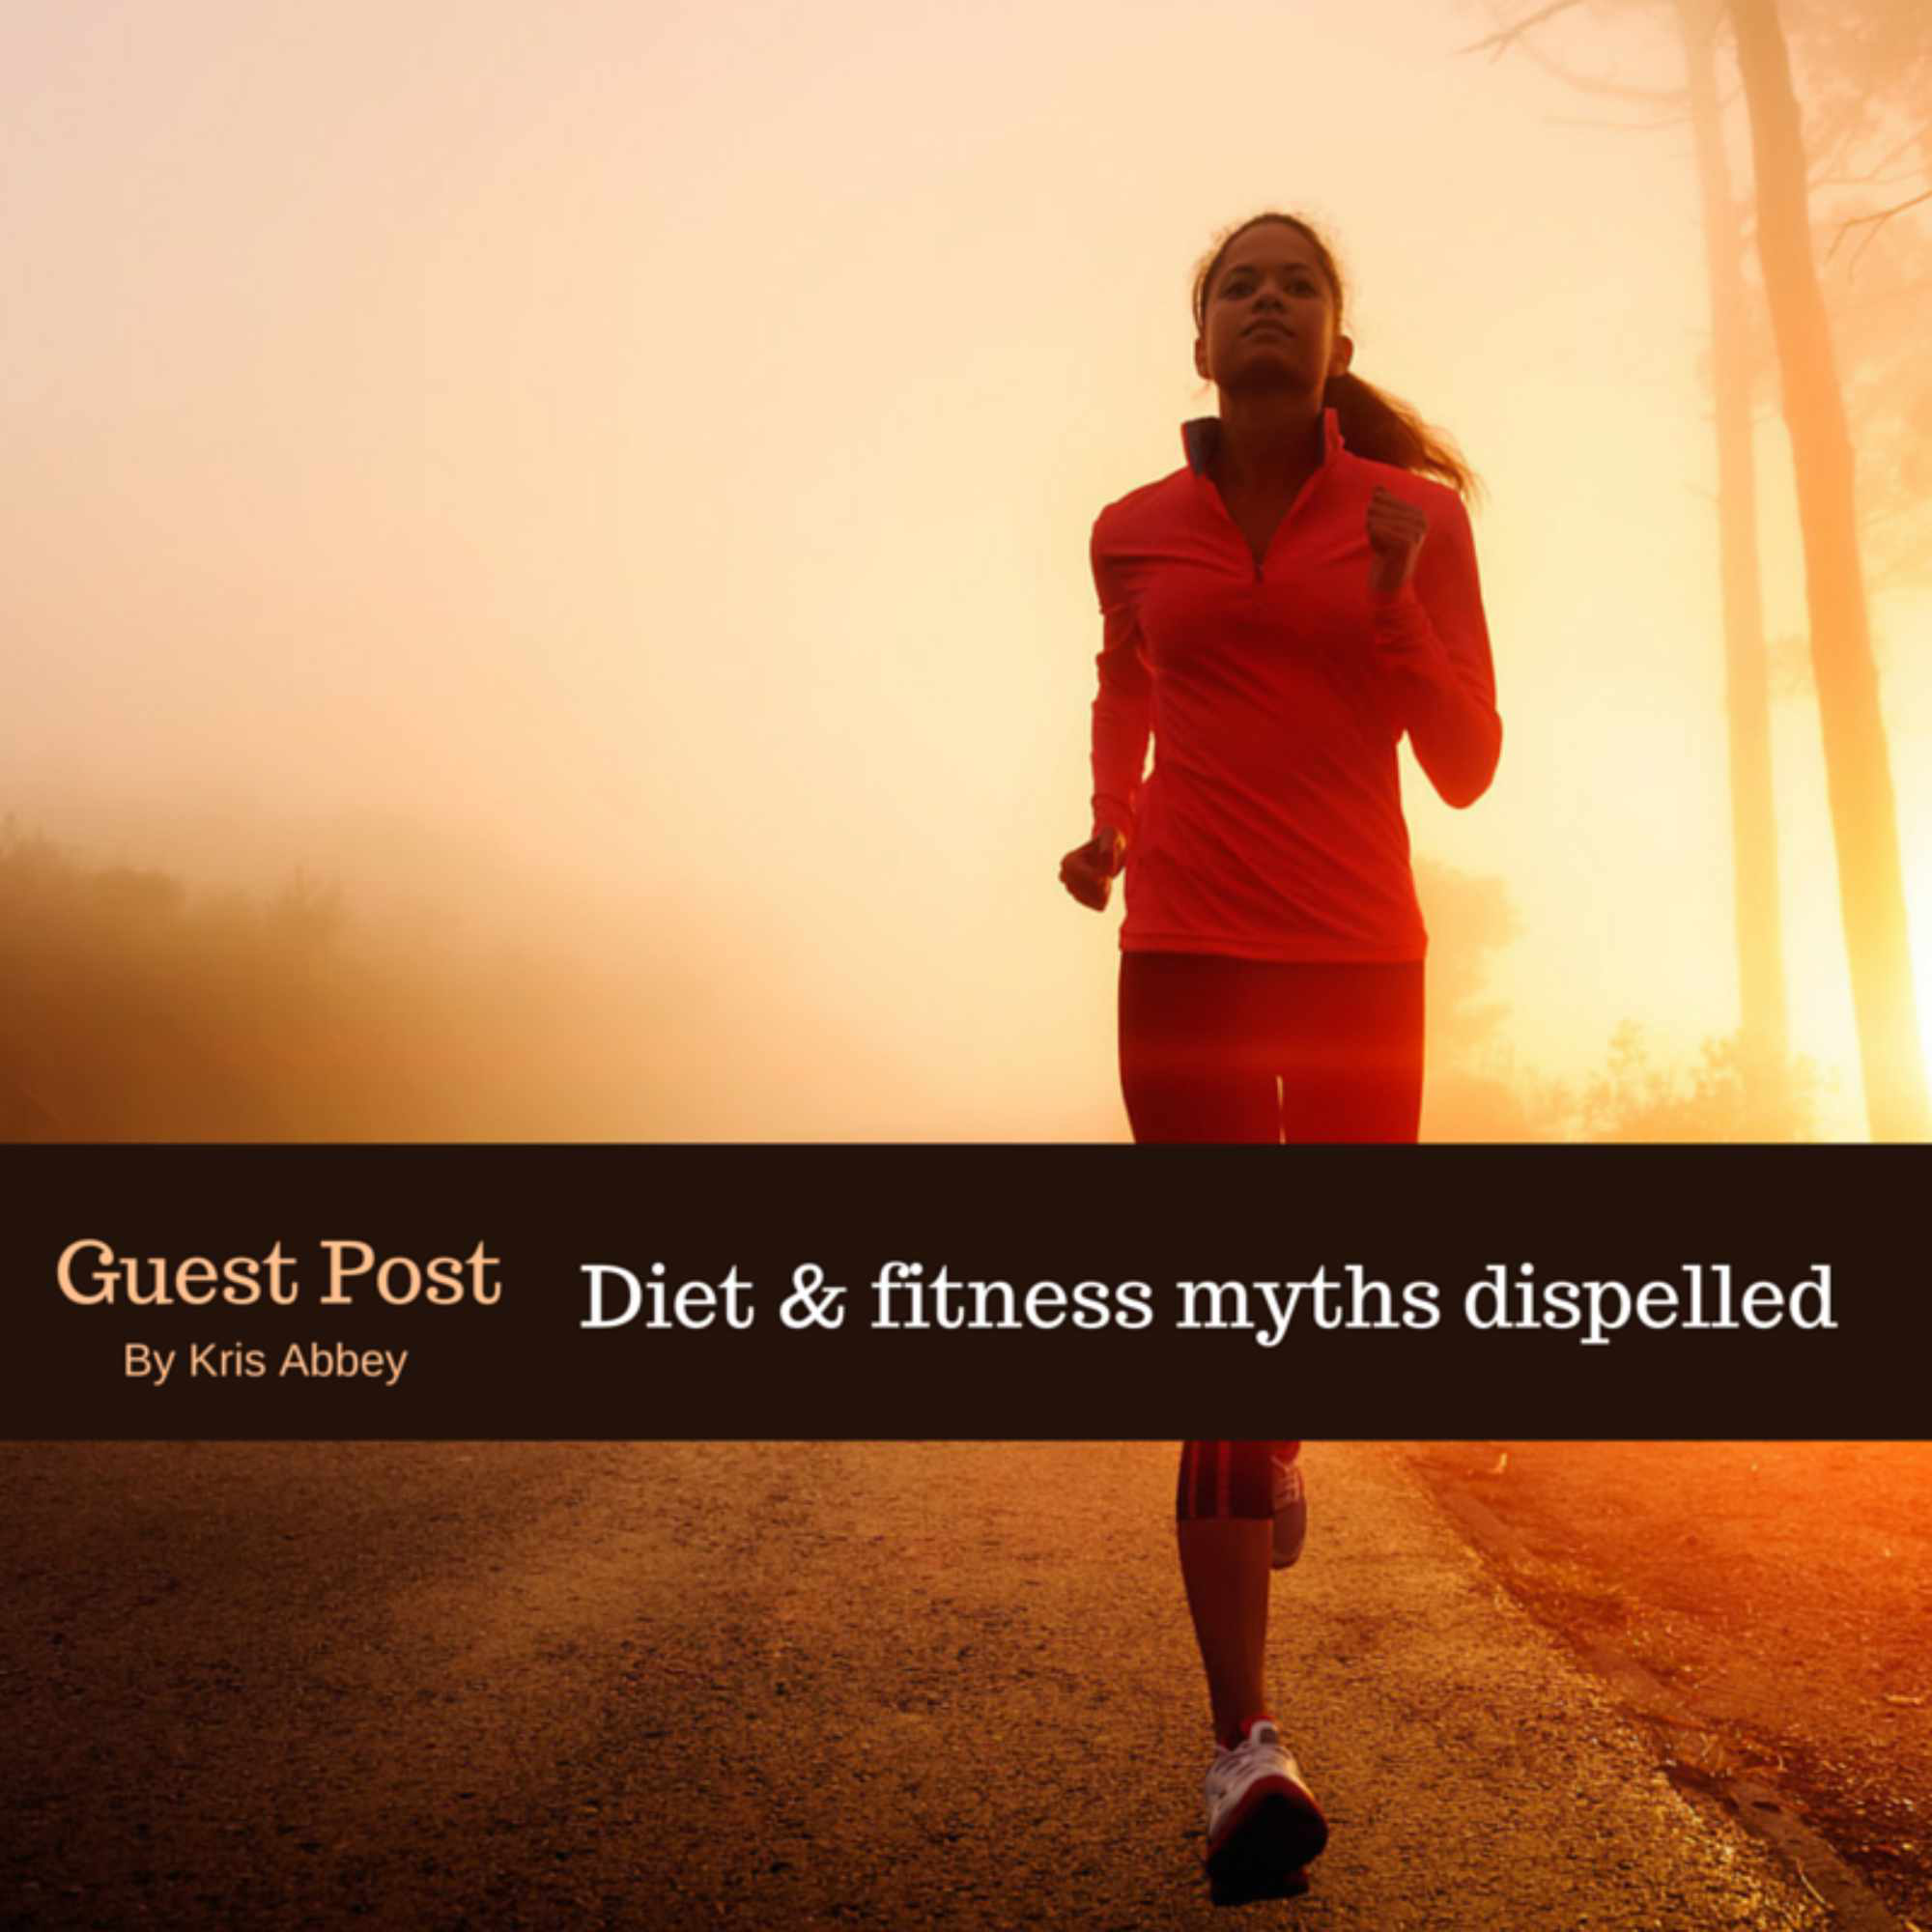 Guest Post: Diet and fitness myths dispelled